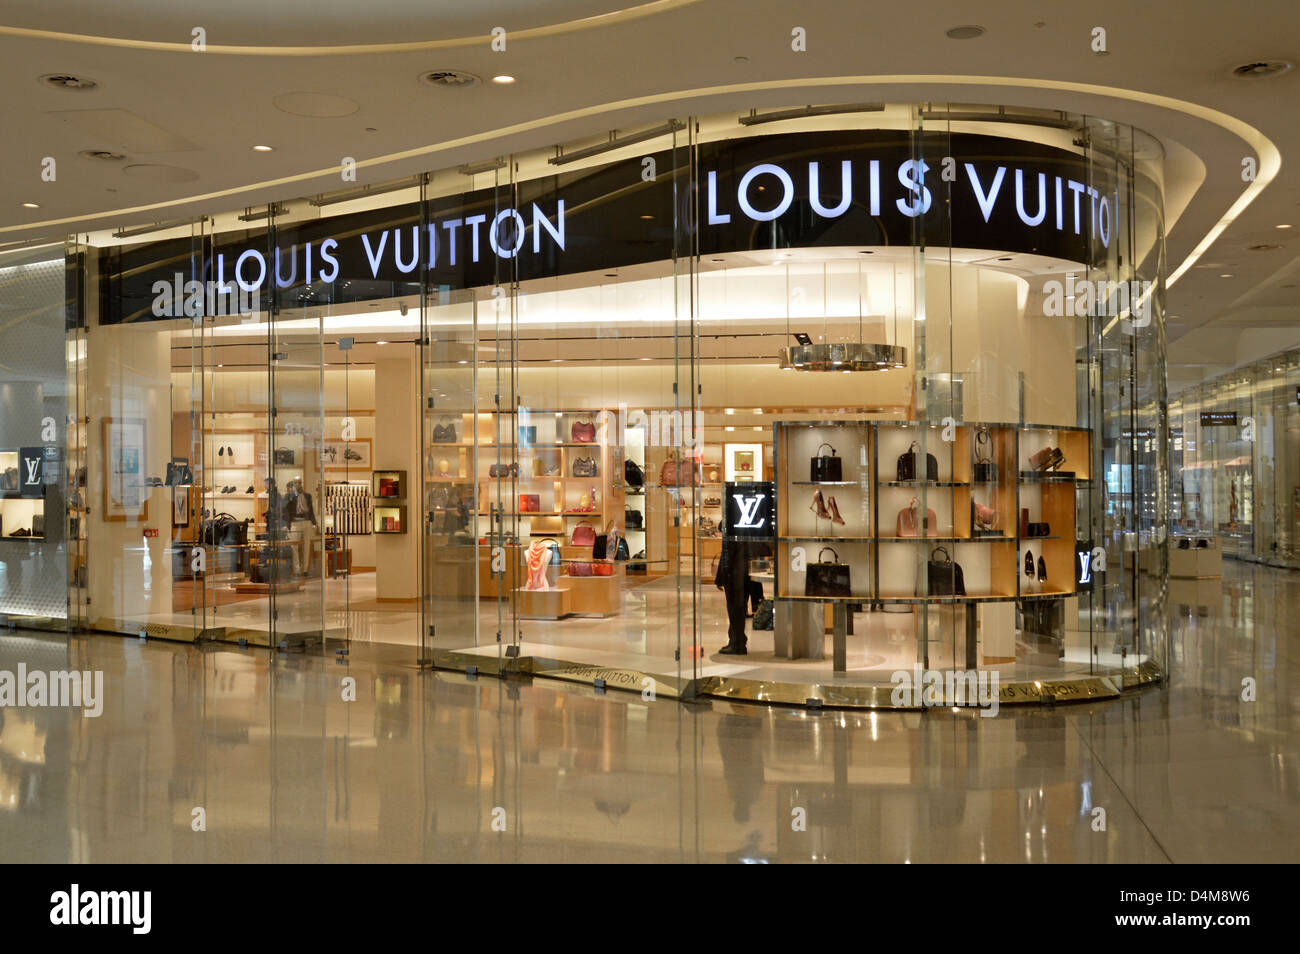 765c5538fe8 Louis Vuitton handbag store window shop front display in the Stock ...